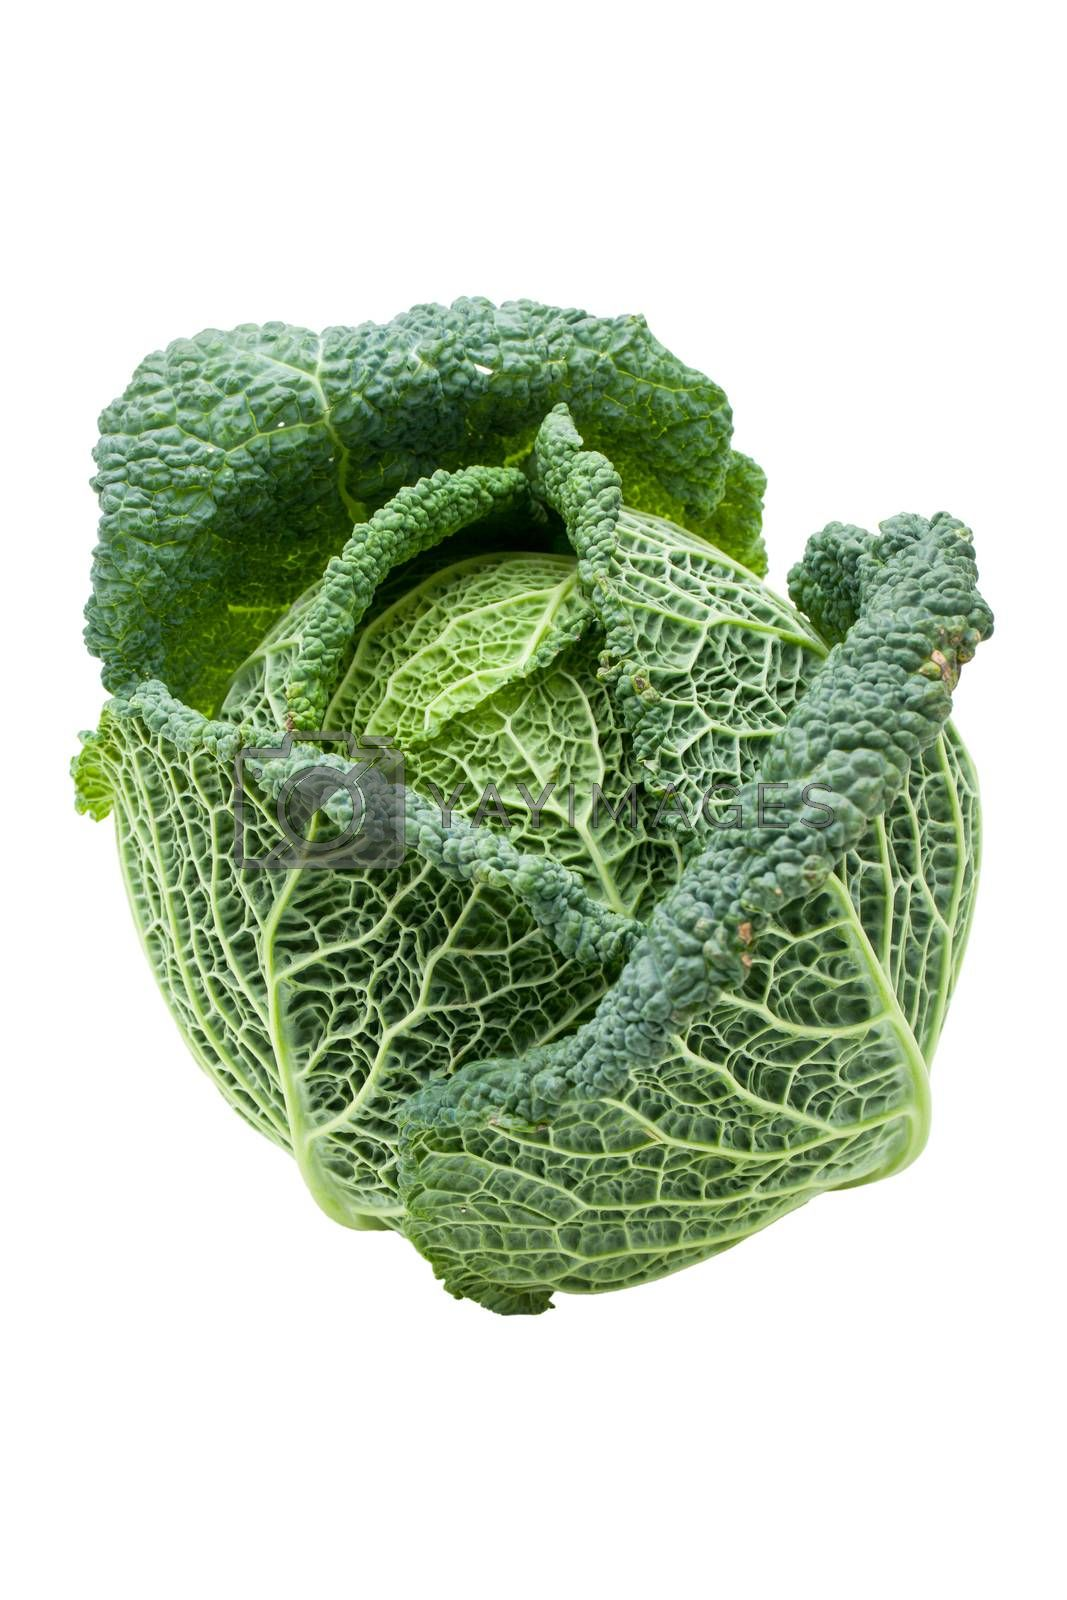 Head of fresh ripe Savoy cabbage isolated